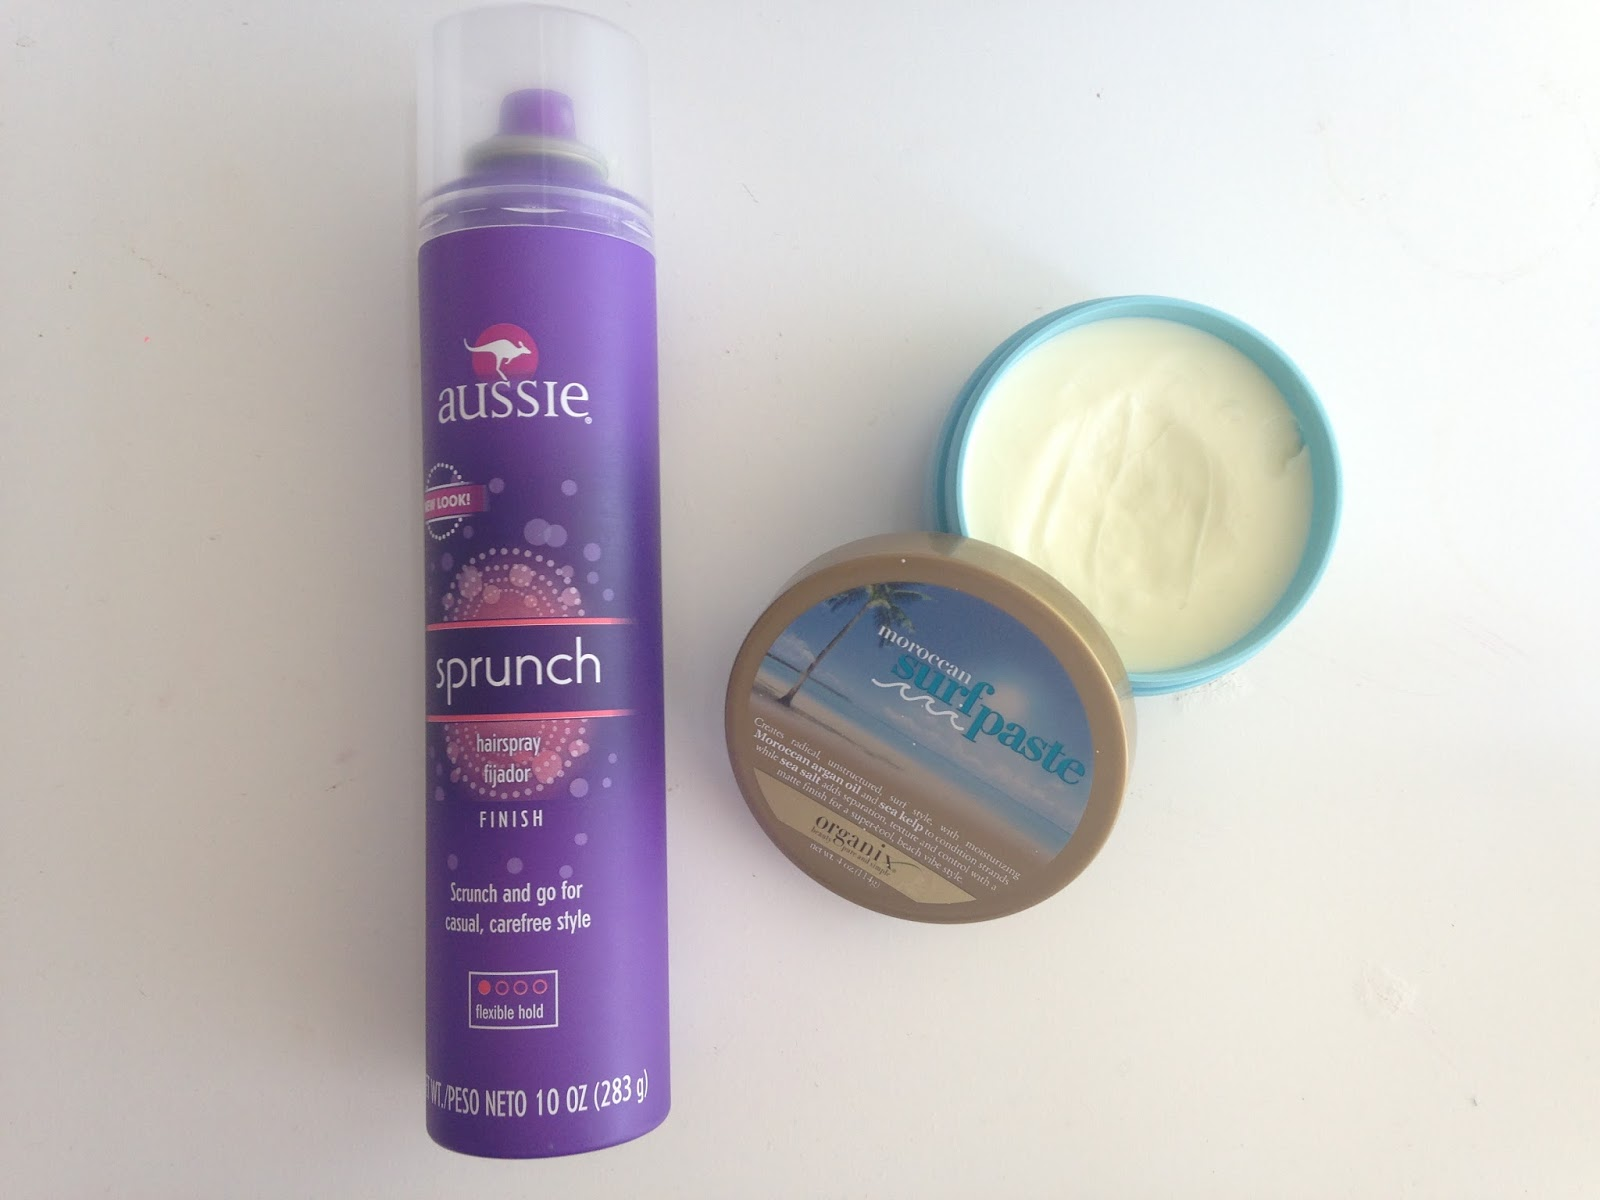 how to use aussie sprunch mousse